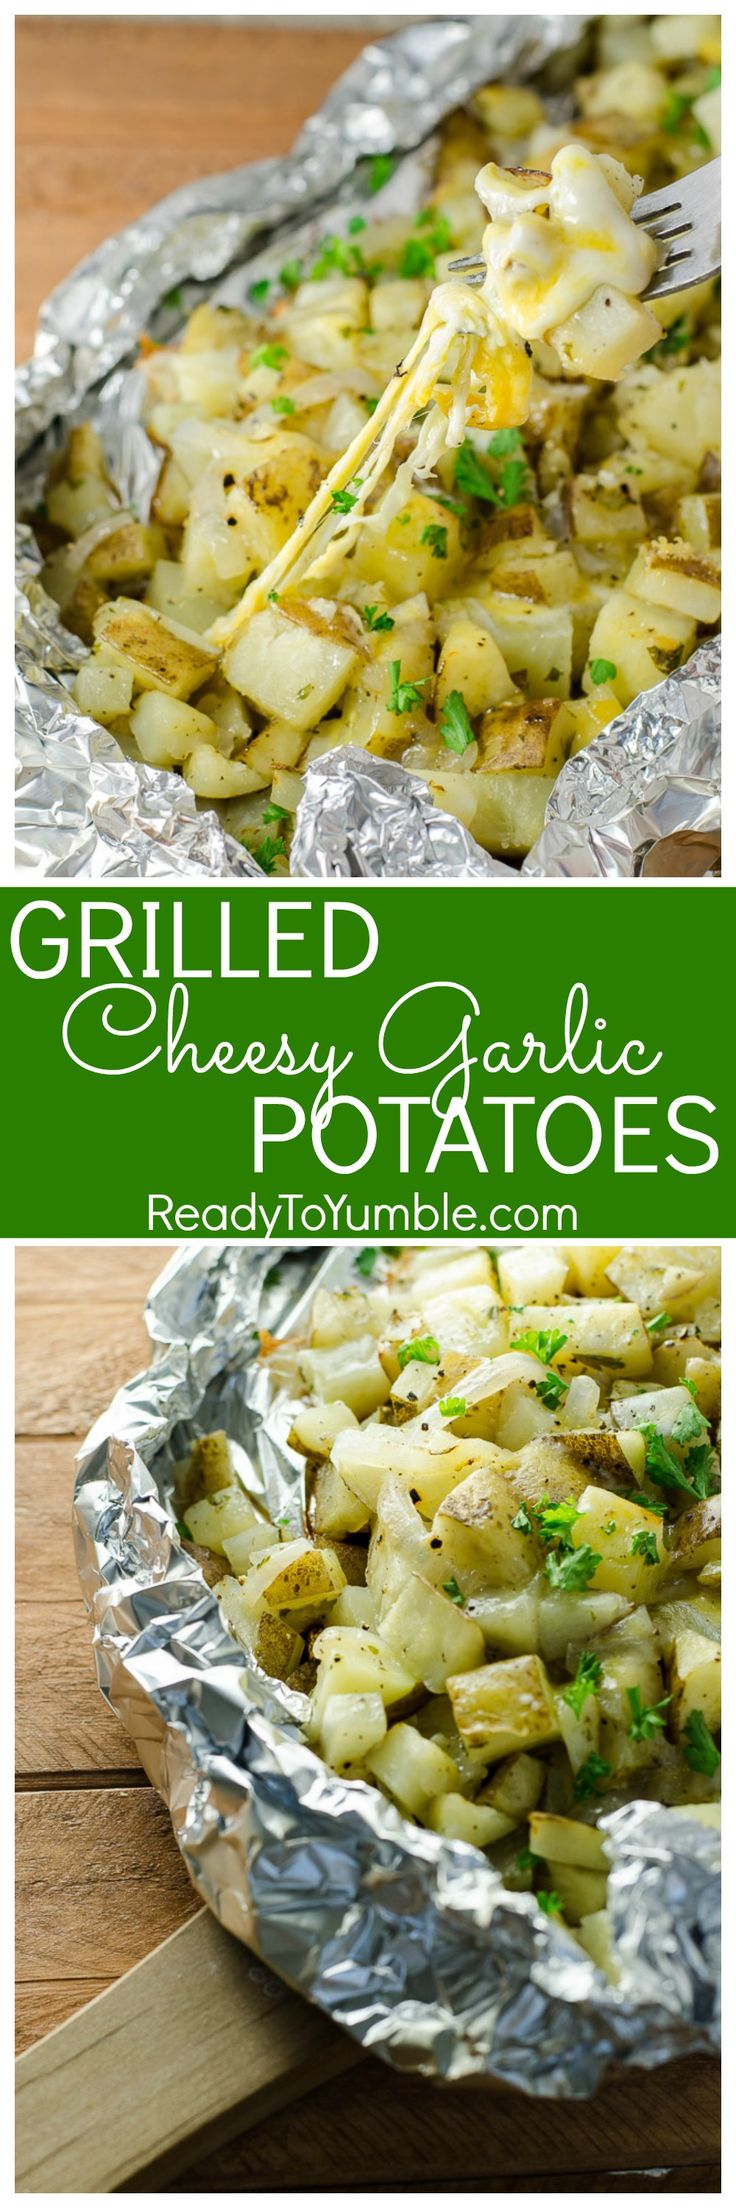 Easy and cheesy, these Grilled Cheesy Garlic Potatoes are cooked in foil until tender and flavorful. The perfect BBQ side dish, and clean-up is a breeze!